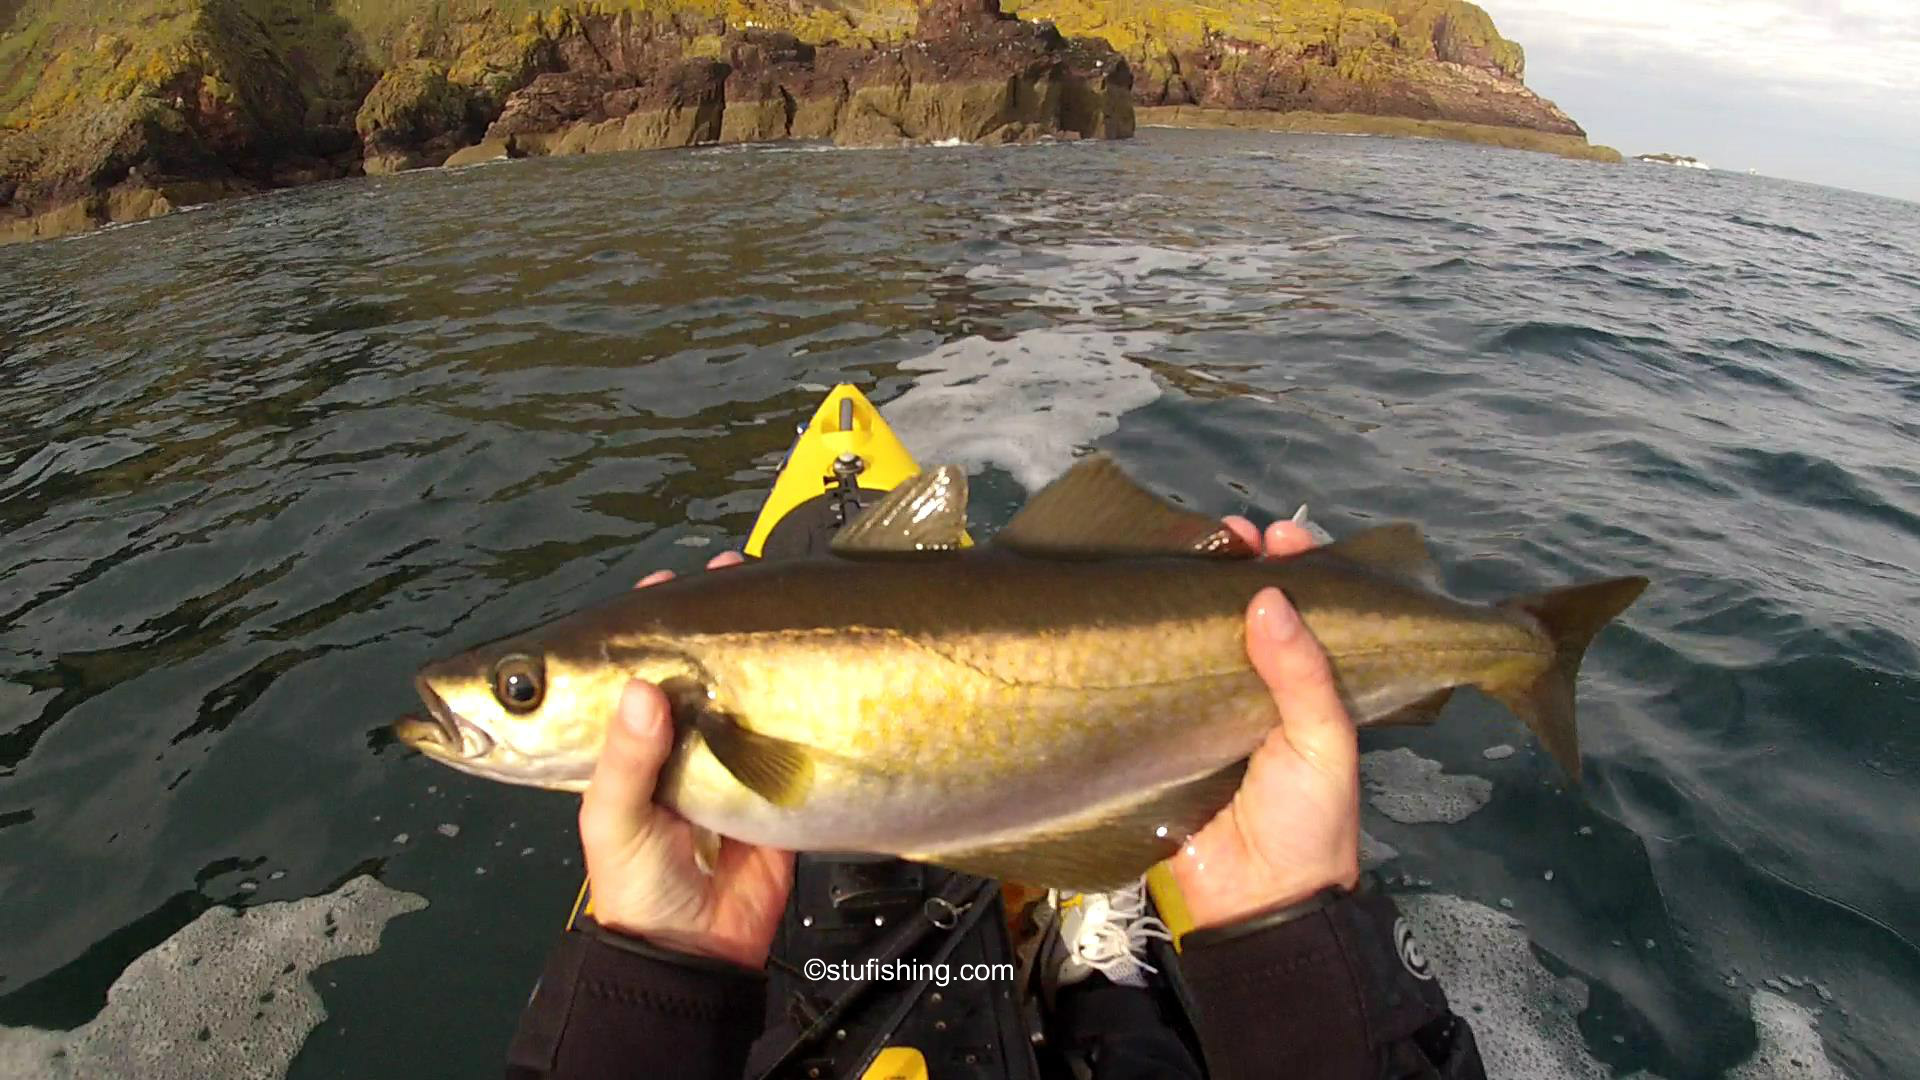 Kayak Fishing Once More – Back to St Abbs